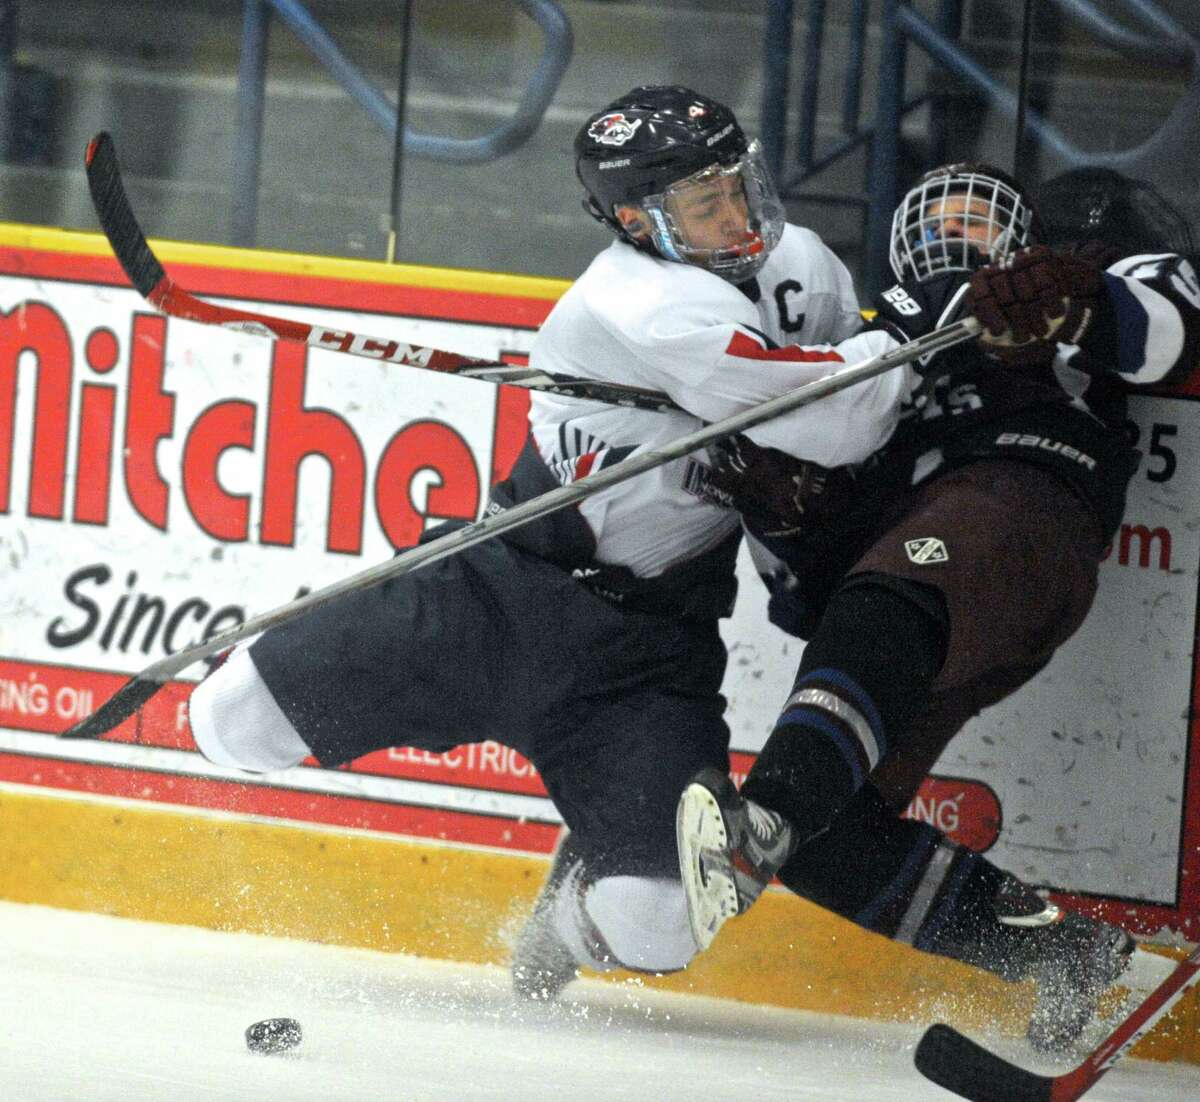 NFI's Joseph Lane (4) checks BBD's Tanner Trew (15) into the boards during the boys high school ice hockey game between Brookfield-Bethel-Danbury and New Fairfield-Immaculate on Wednesday, February 17, 2016, at the Danbury Ice Arena, in Danbury, Conn.